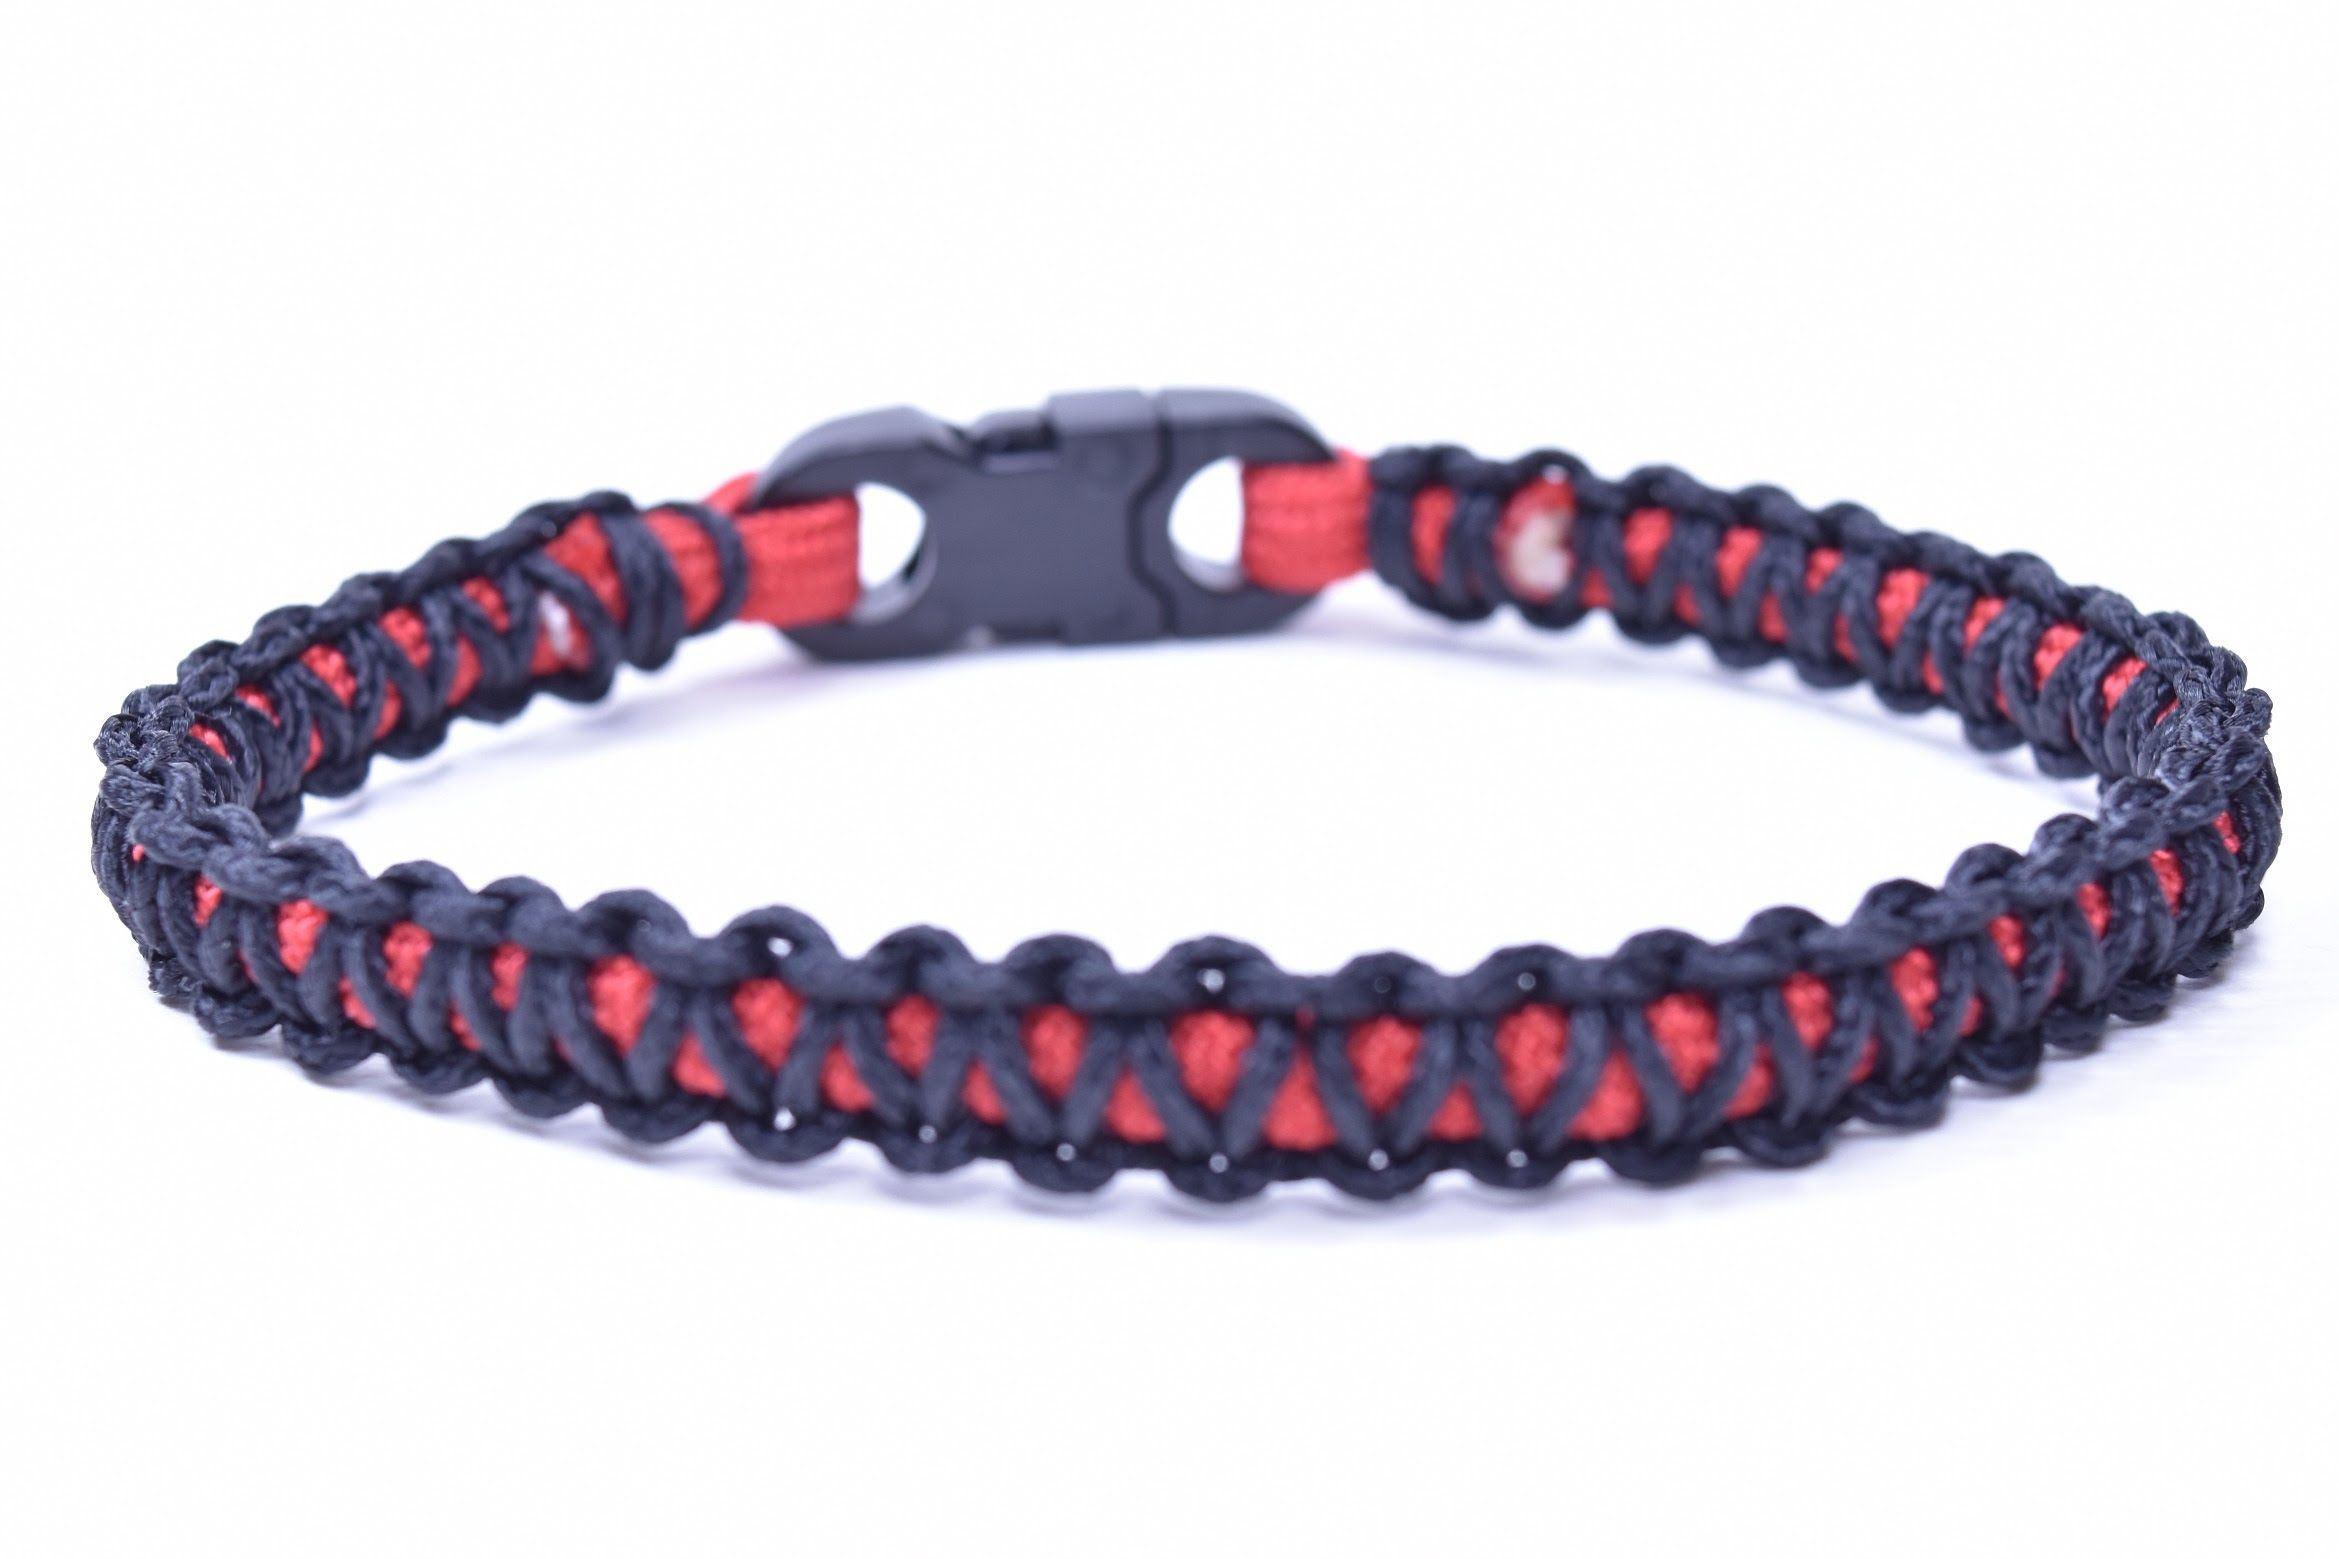 How To Make A Mini Cobra Paracord Bracelet Bored Paracord